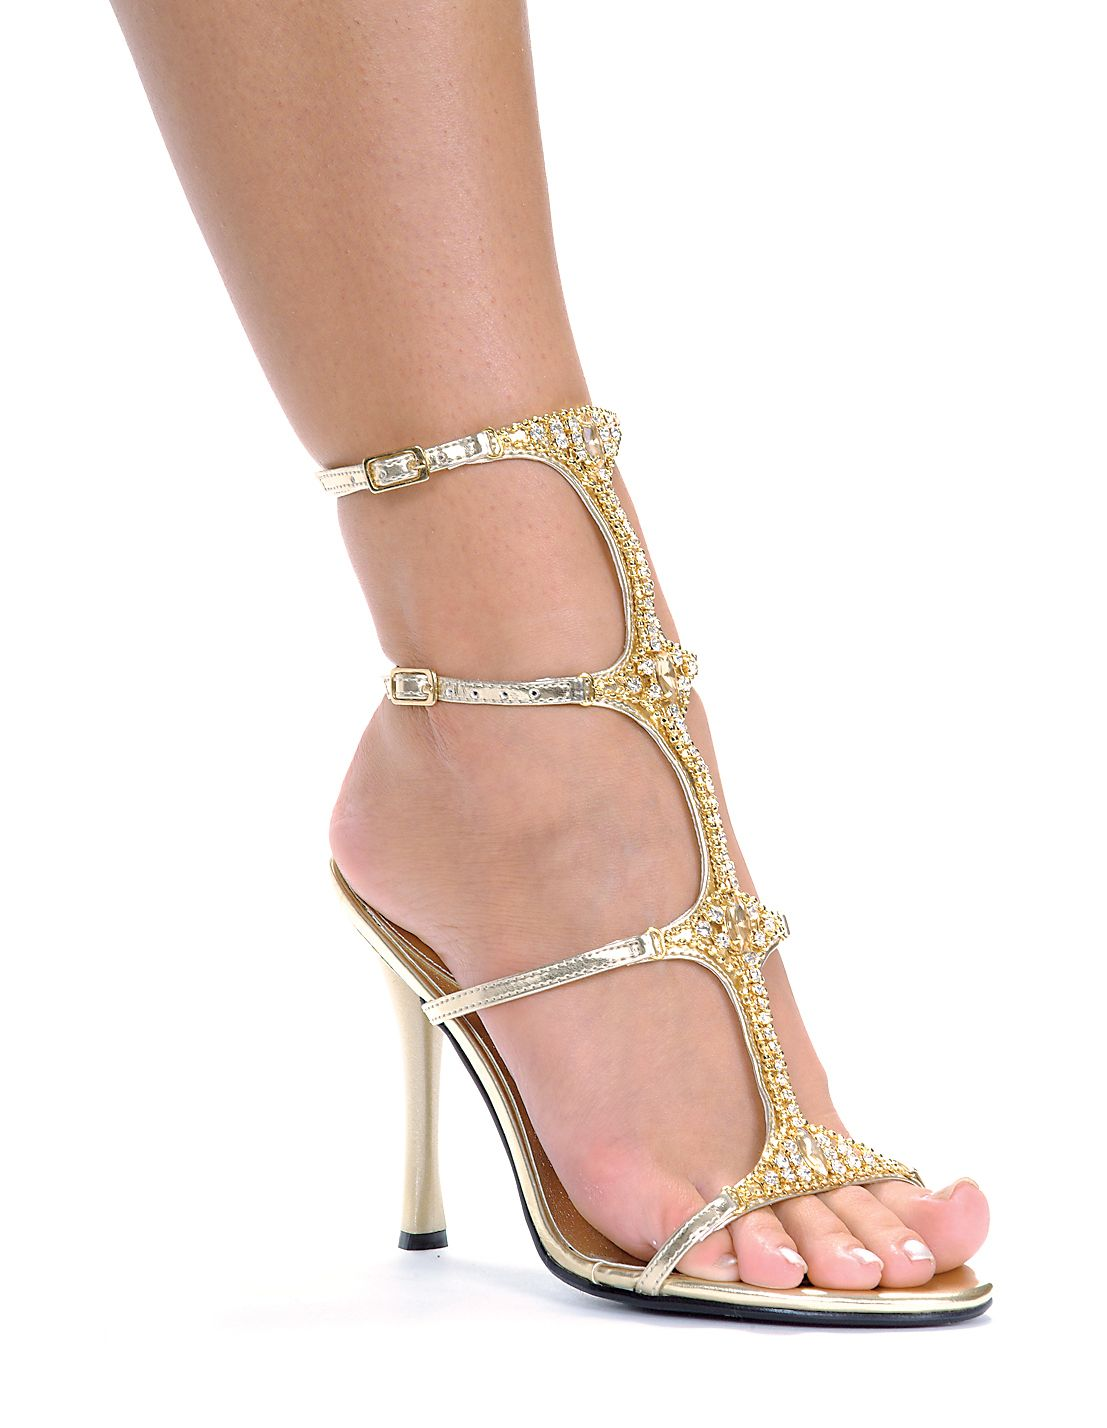 d9c7ae87fa256 Ankle high gladiator style strappy sandals with rhinestones and jewel detail  and 4 1 2 inch heels